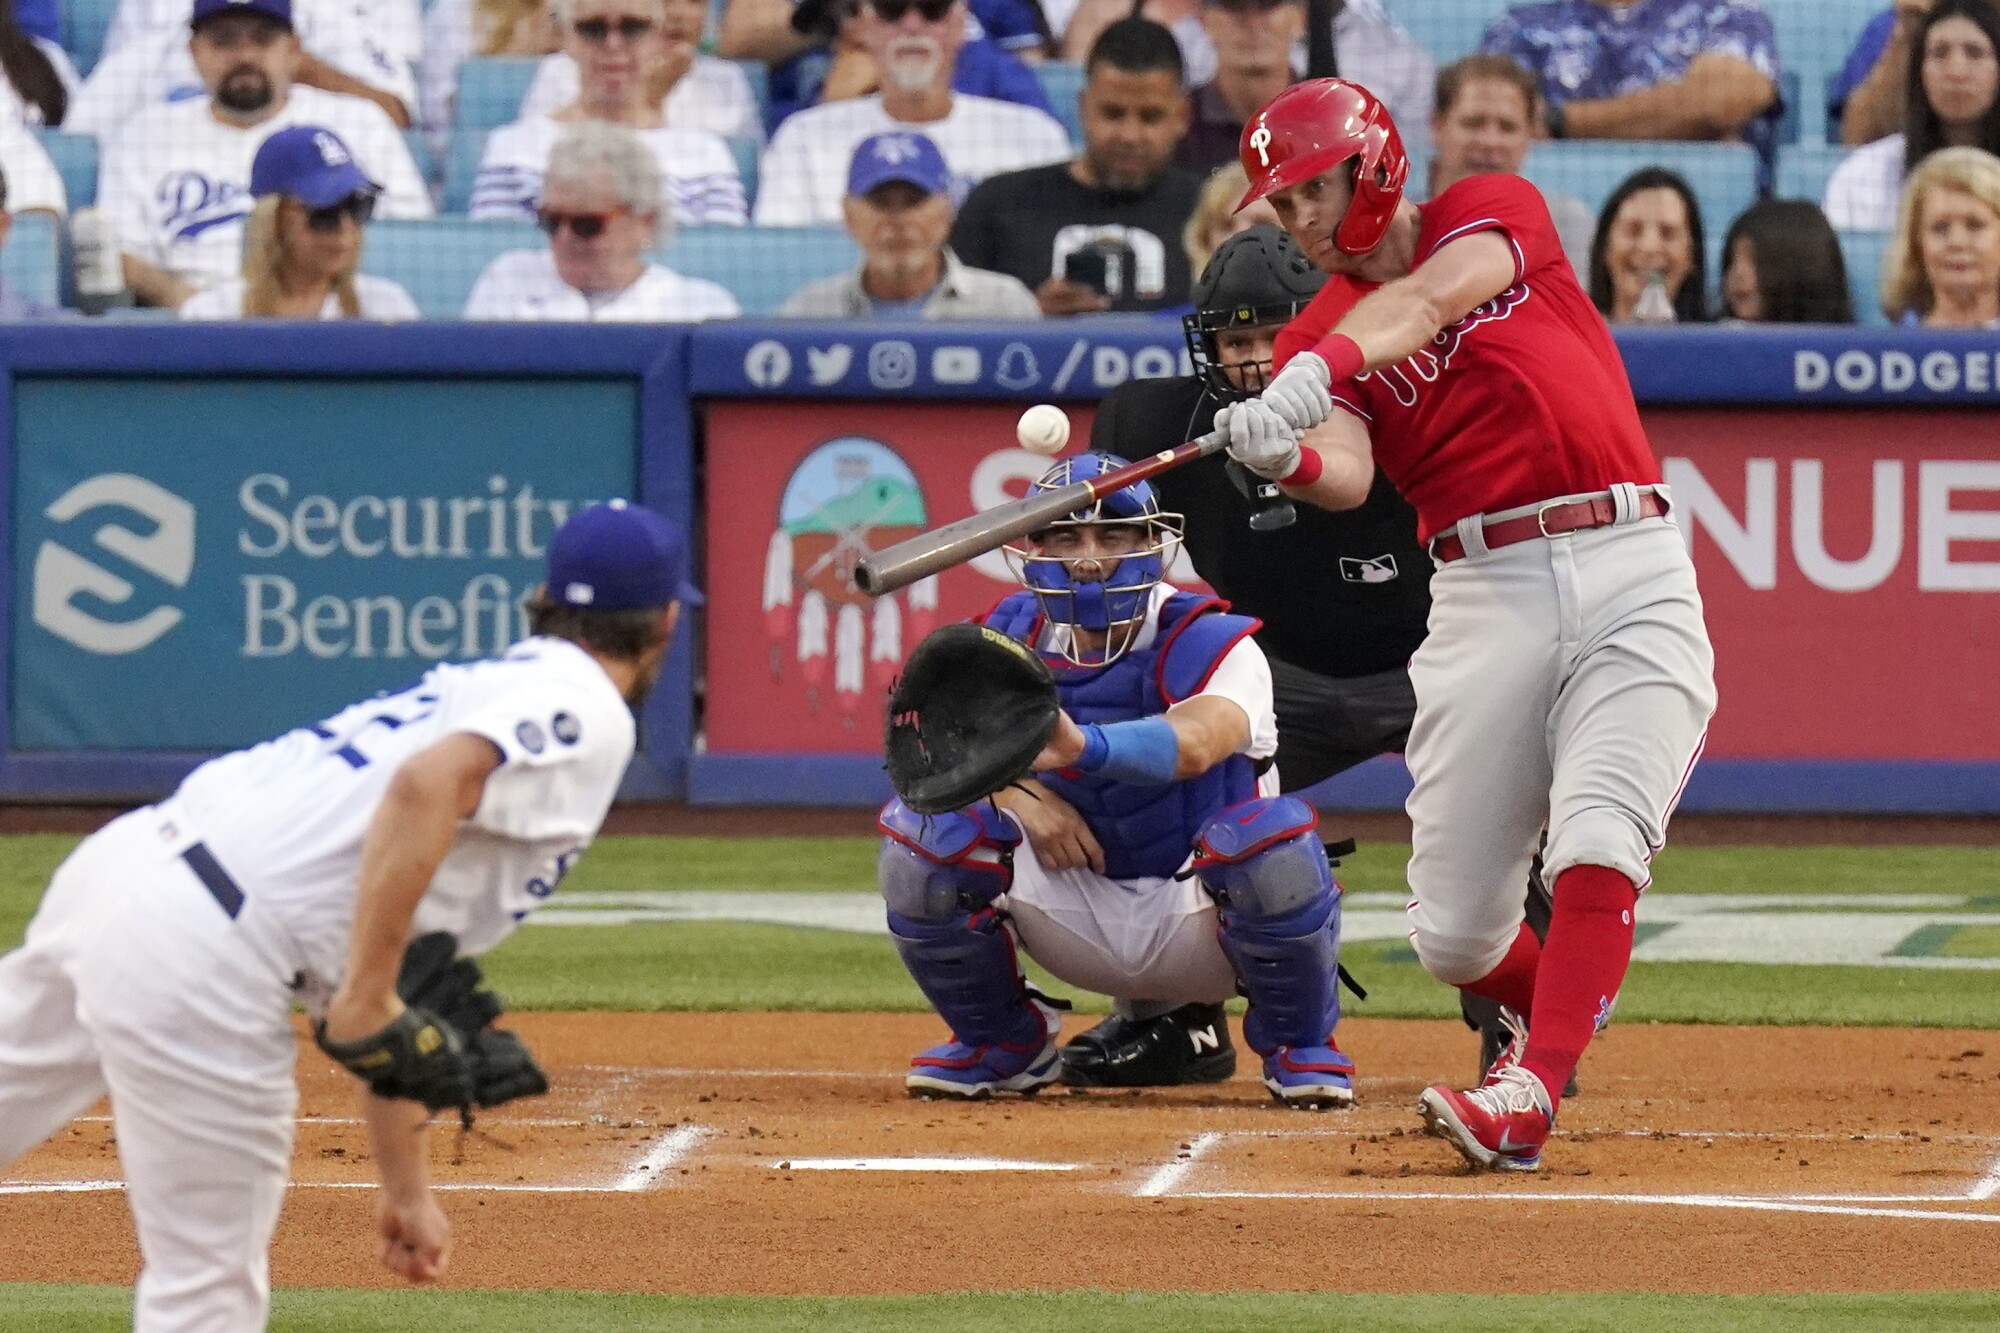 Philadelphia's Rhys Hoskins hits a solo home run off Dodgers starting pitcher Clayton Kershaw.